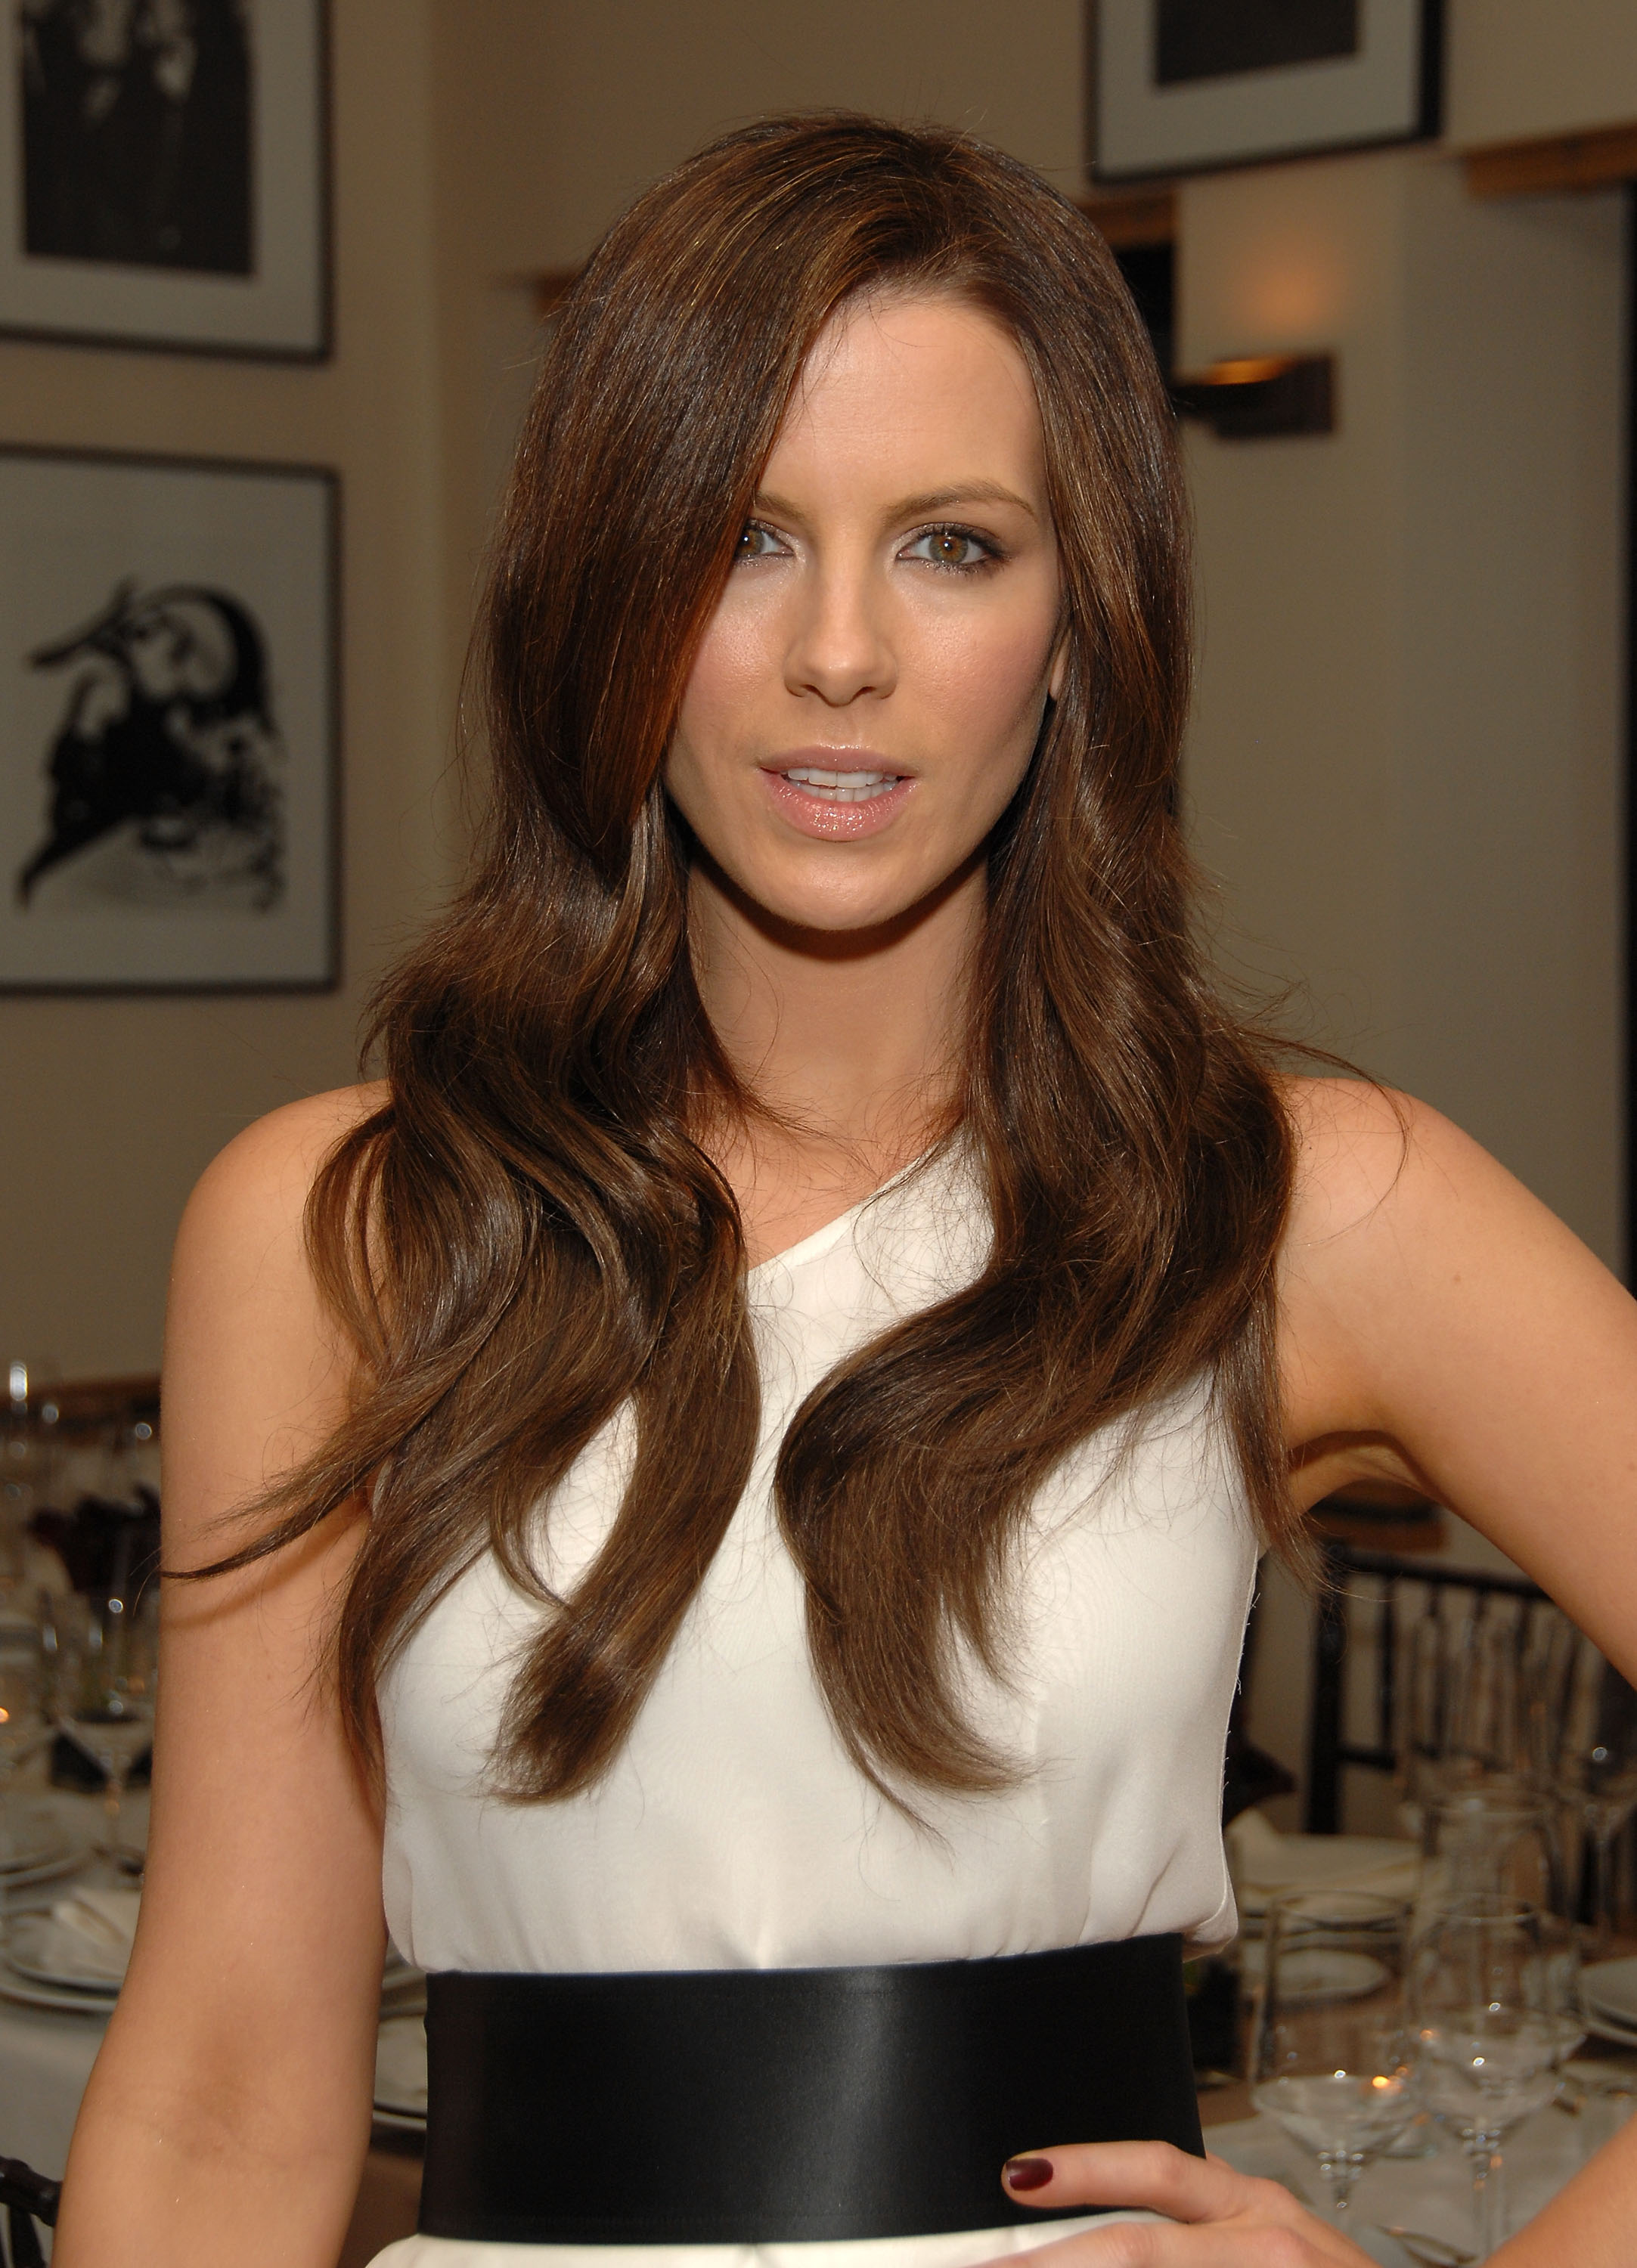 91501_Celebutopia-Kate_Beckinsale-R6Y_Augousti_and_Barneys_dinner_for_Nothing_But_The_Truth-03_122_771lo.jpg